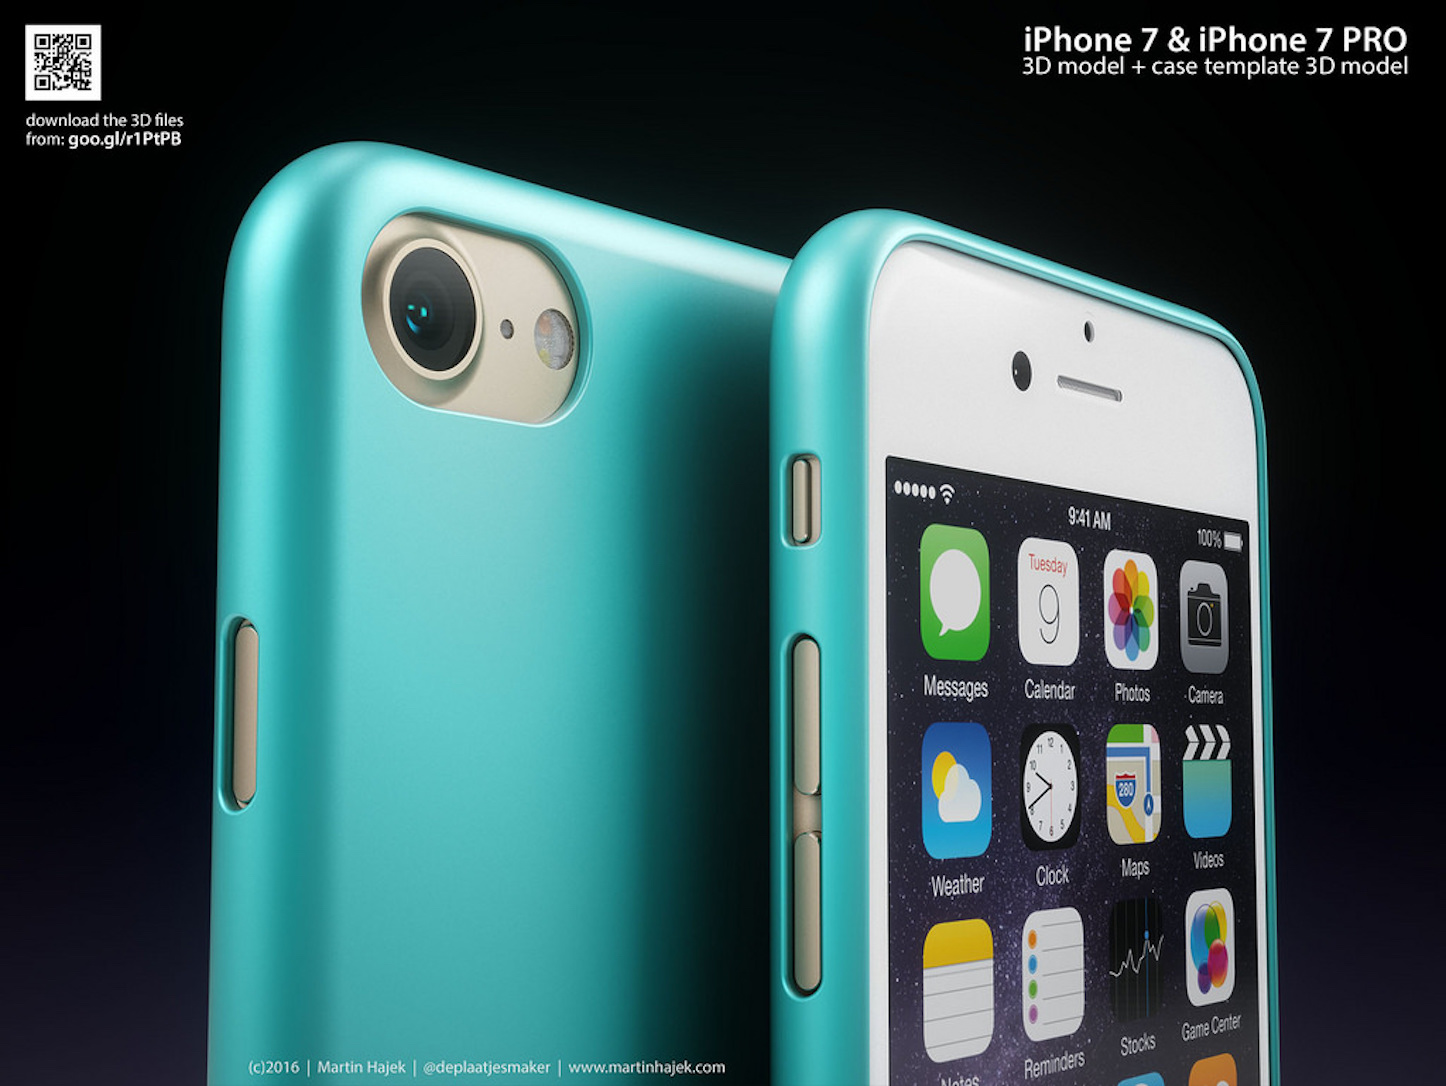 iphone-7-pro-concept-image-4.jpg